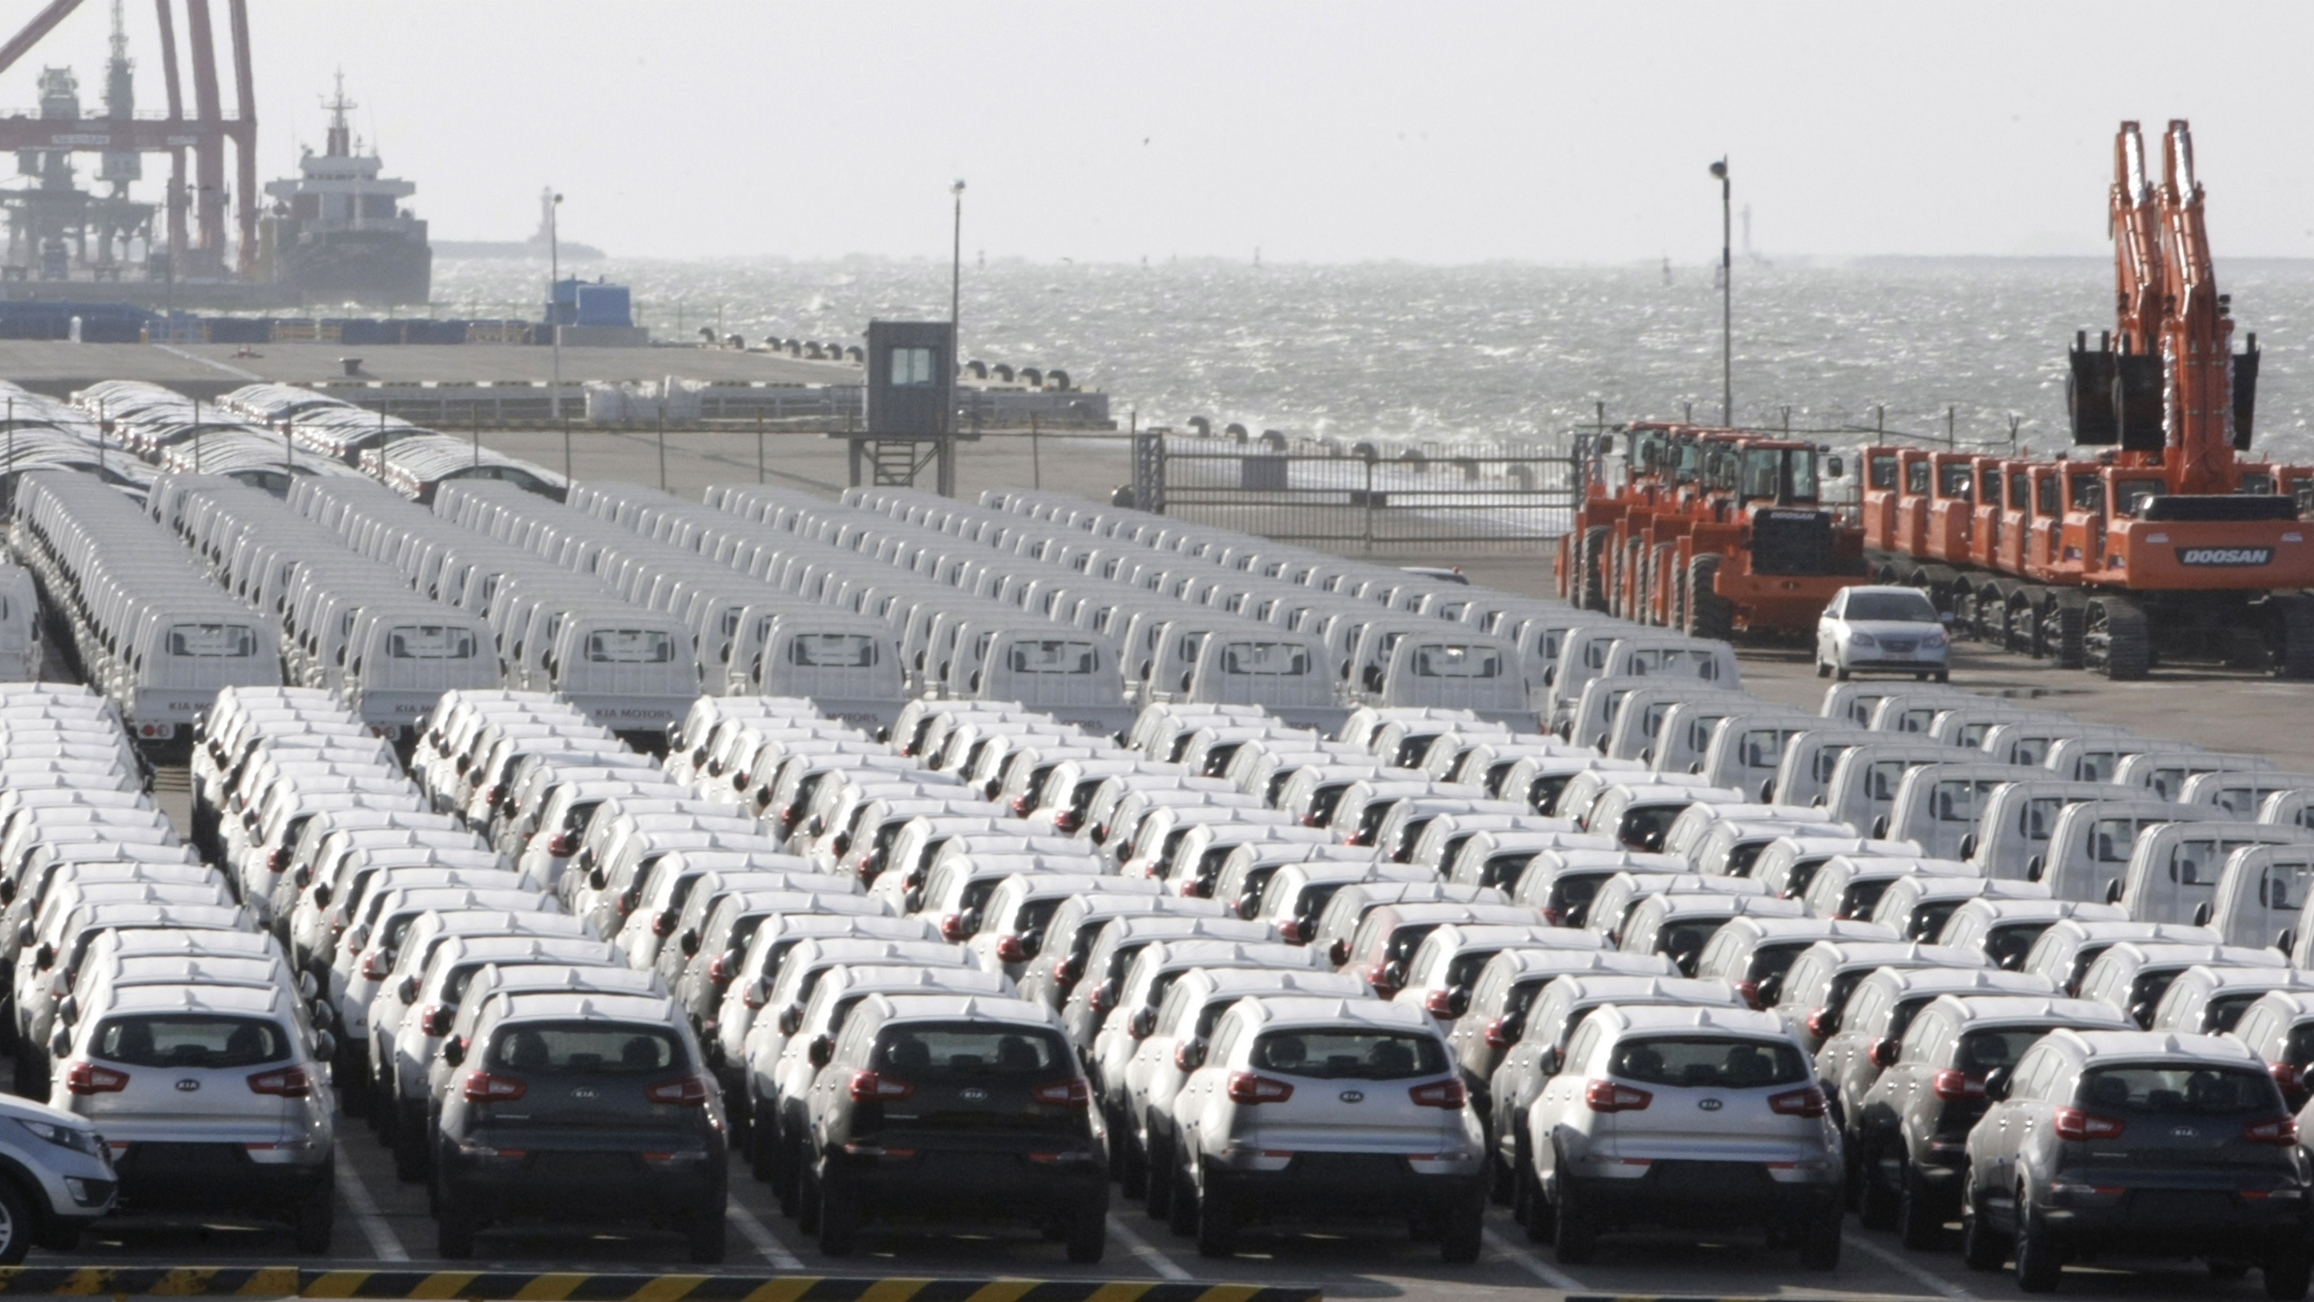 In this photo taken Monday, Oct. 25, 2010, South Korea's automobiles and heavy equipments wait to be shipped to foreign countries at a port in Gunsan, South Korea. South Korea's economic growth slowed sharply in the third quarter on weaker exports and manufacturing as prospects for the global recovery turn cloudy.(AP Photo/Ahn Young-joon